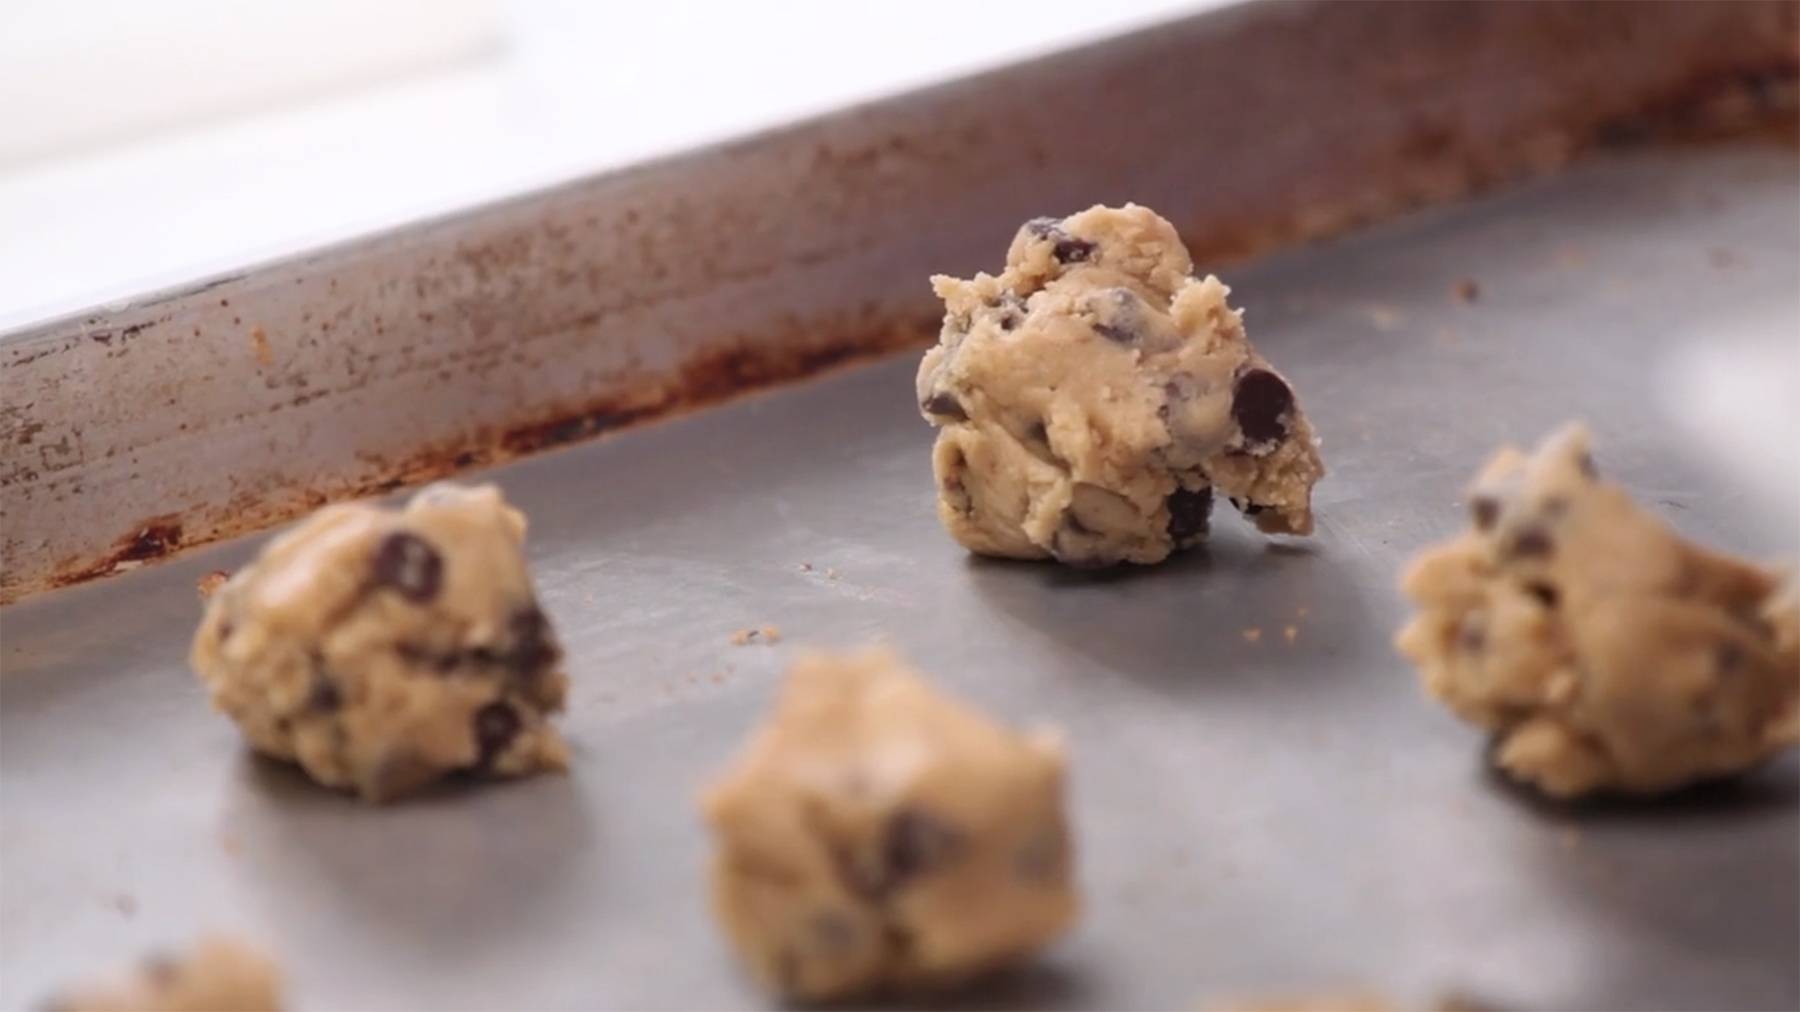 Cookie dough on cooled baking sheet